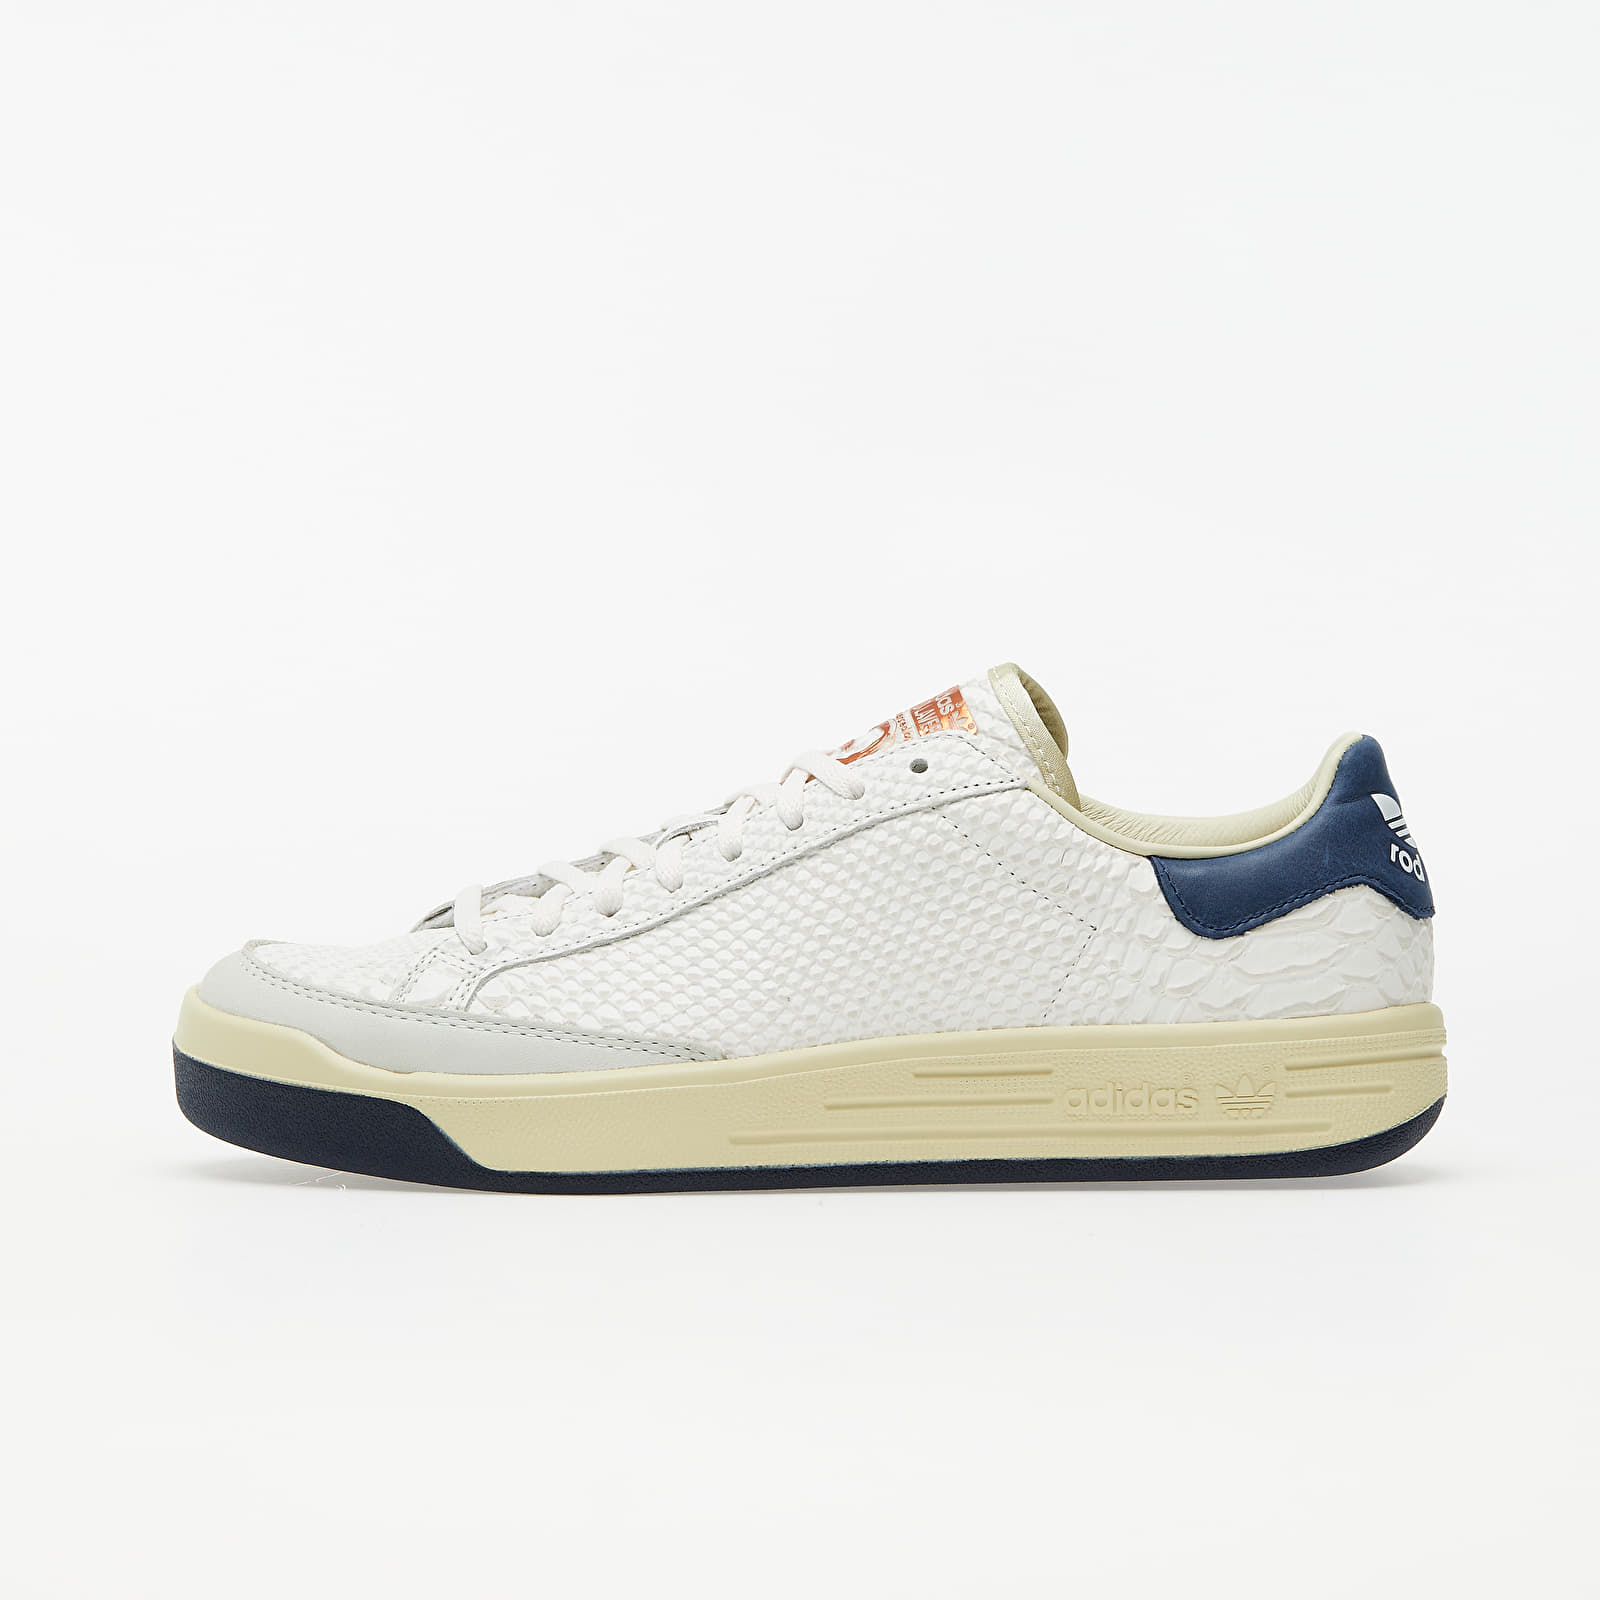 Men's shoes adidas Consortium Rod Laver Reptile Core White/ Core White/ Collegiate Navy